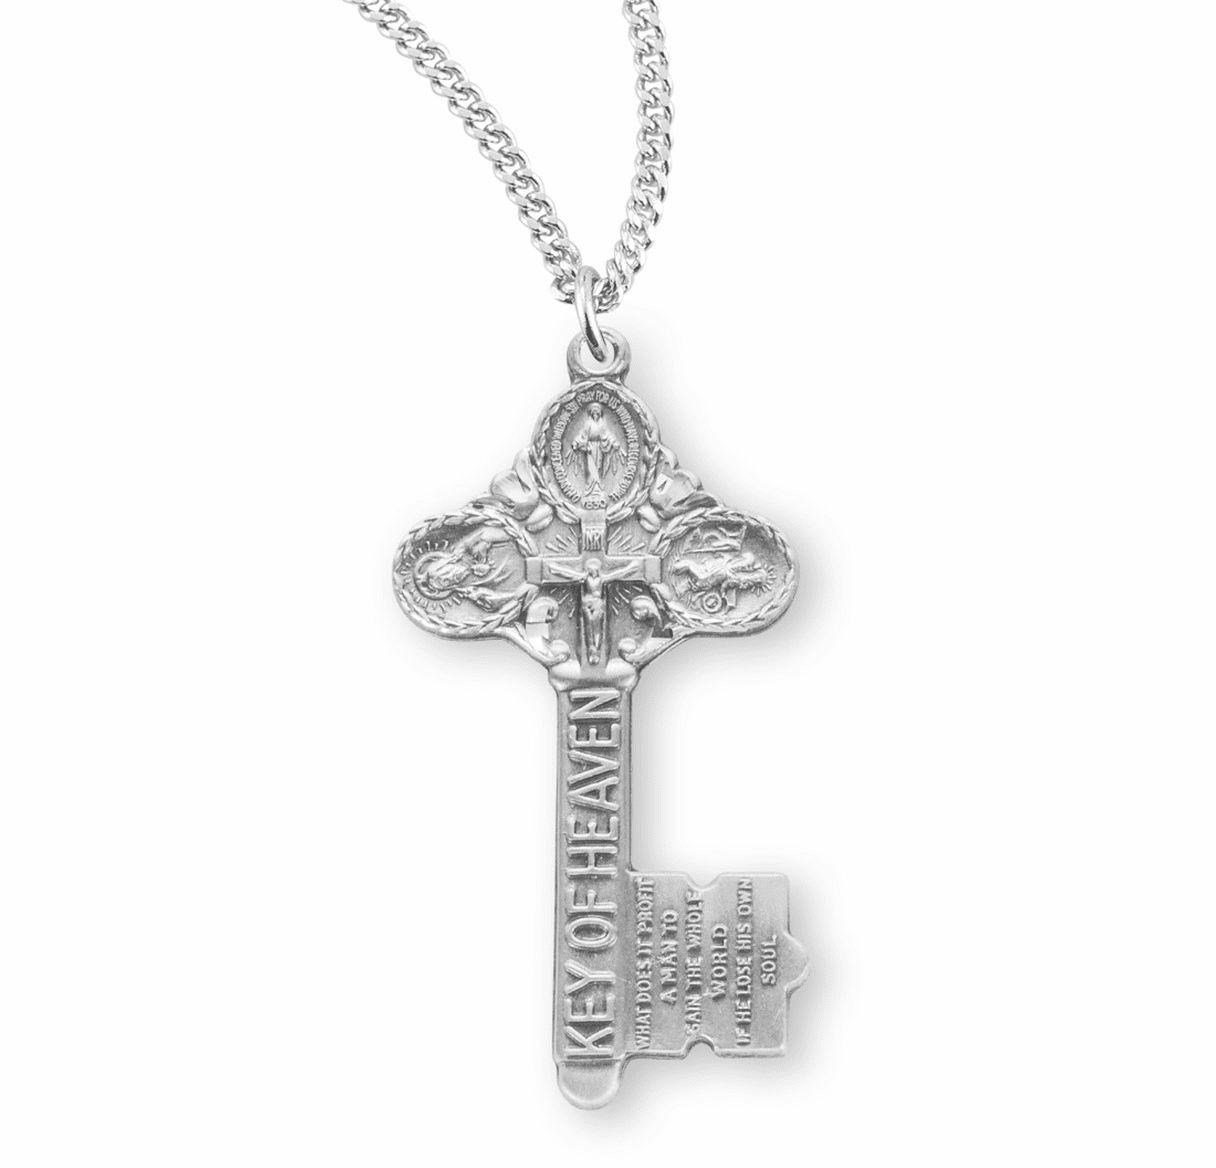 3-Way Key of Heaven Sterling Cross Medal Necklace by HMH Religious